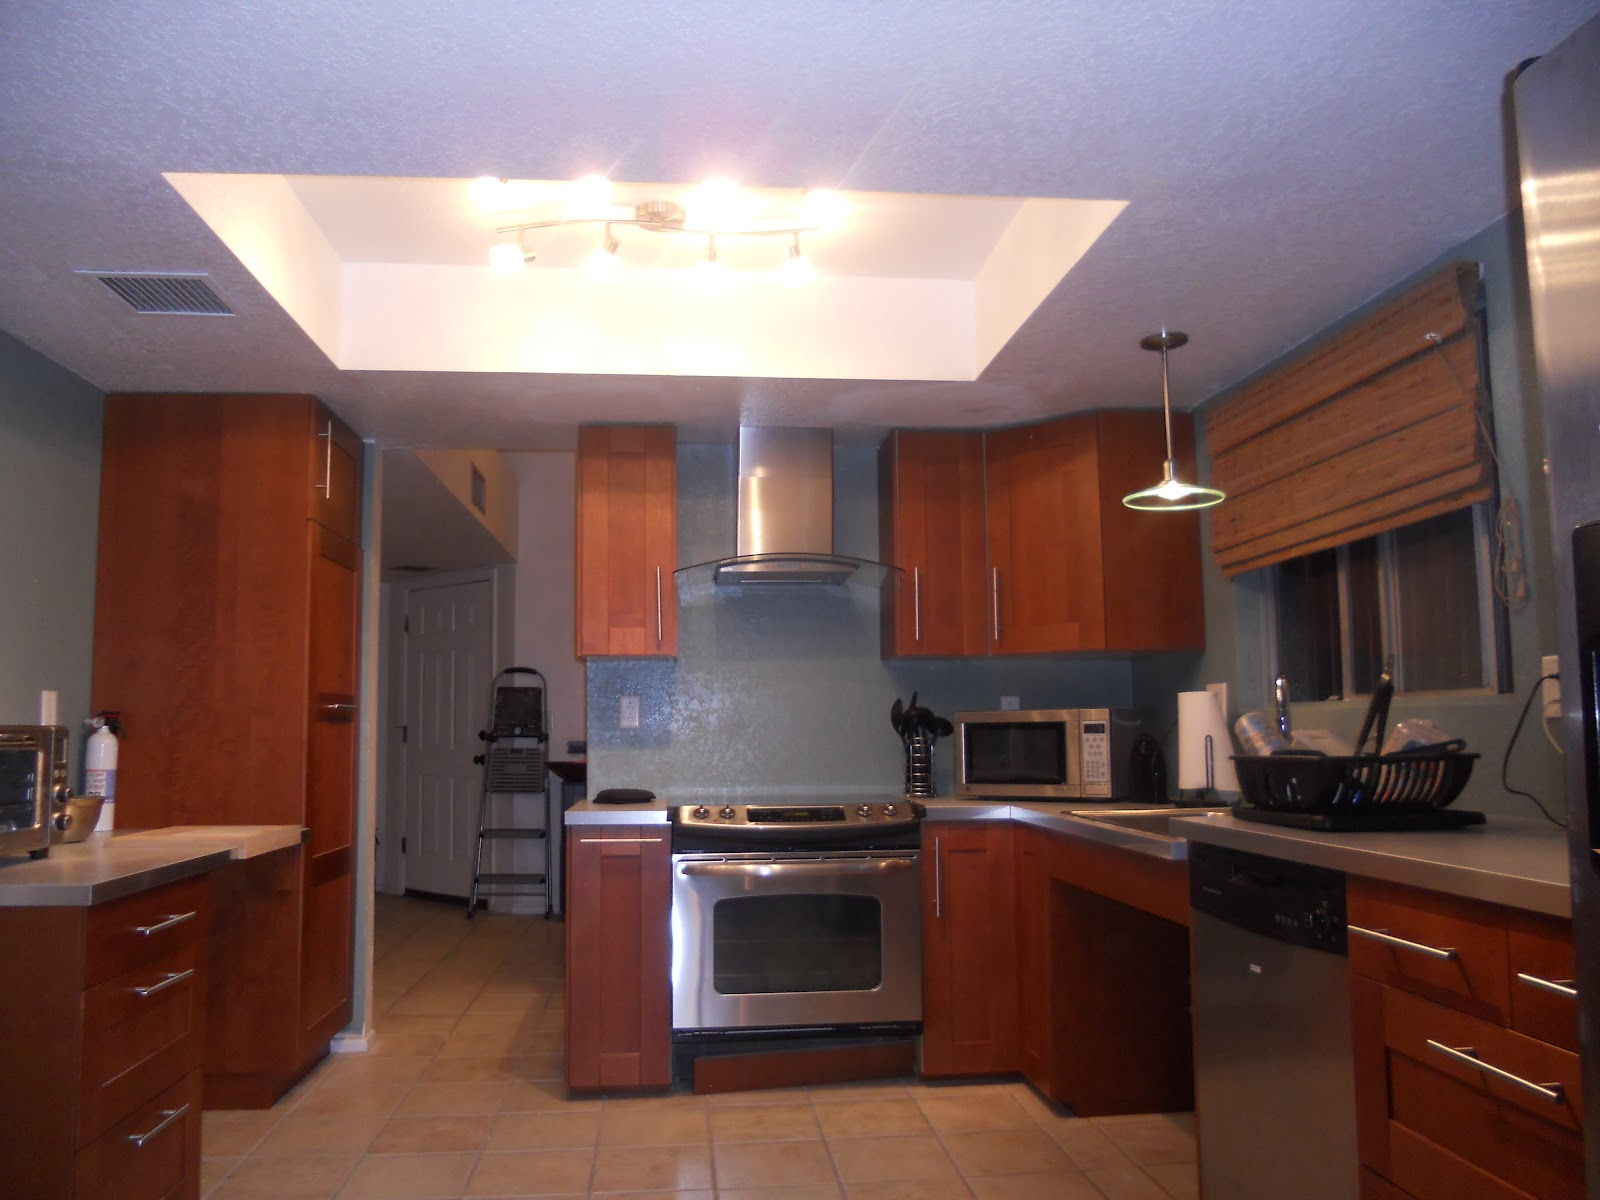 A Proper Understanding Of Electrical Systems Led Kitchen Lights Ceiling